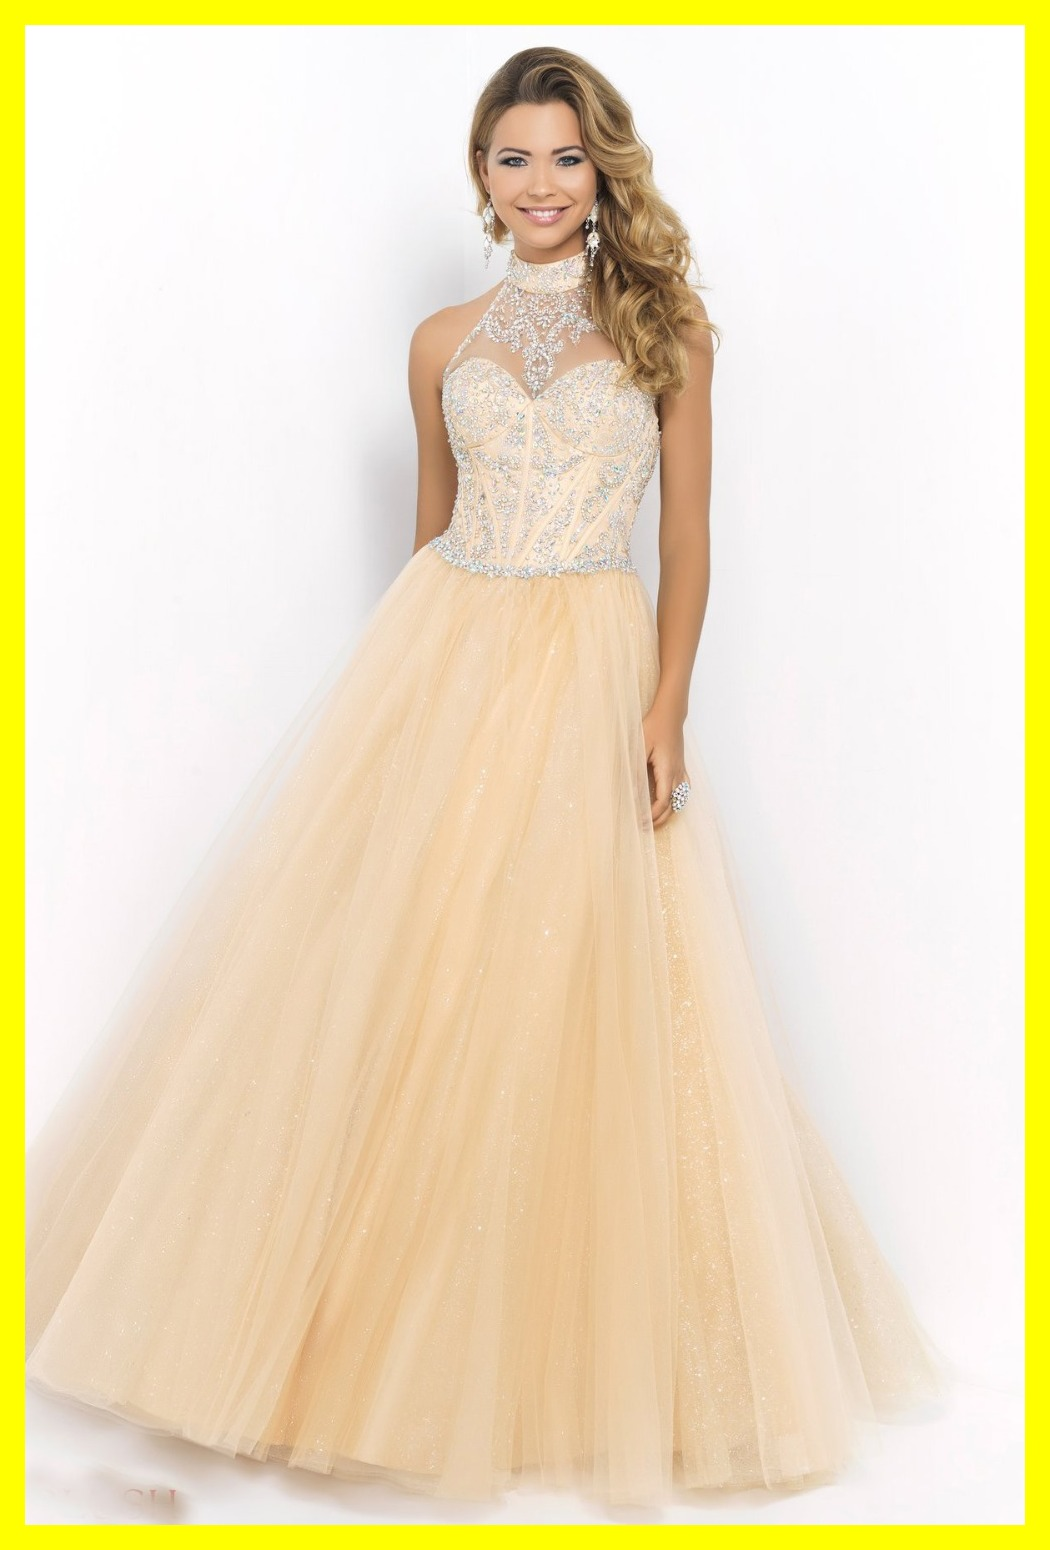 Kids Prom Dresses Uk Baby Doll Dress Stores In Dallas Petite Girls ...